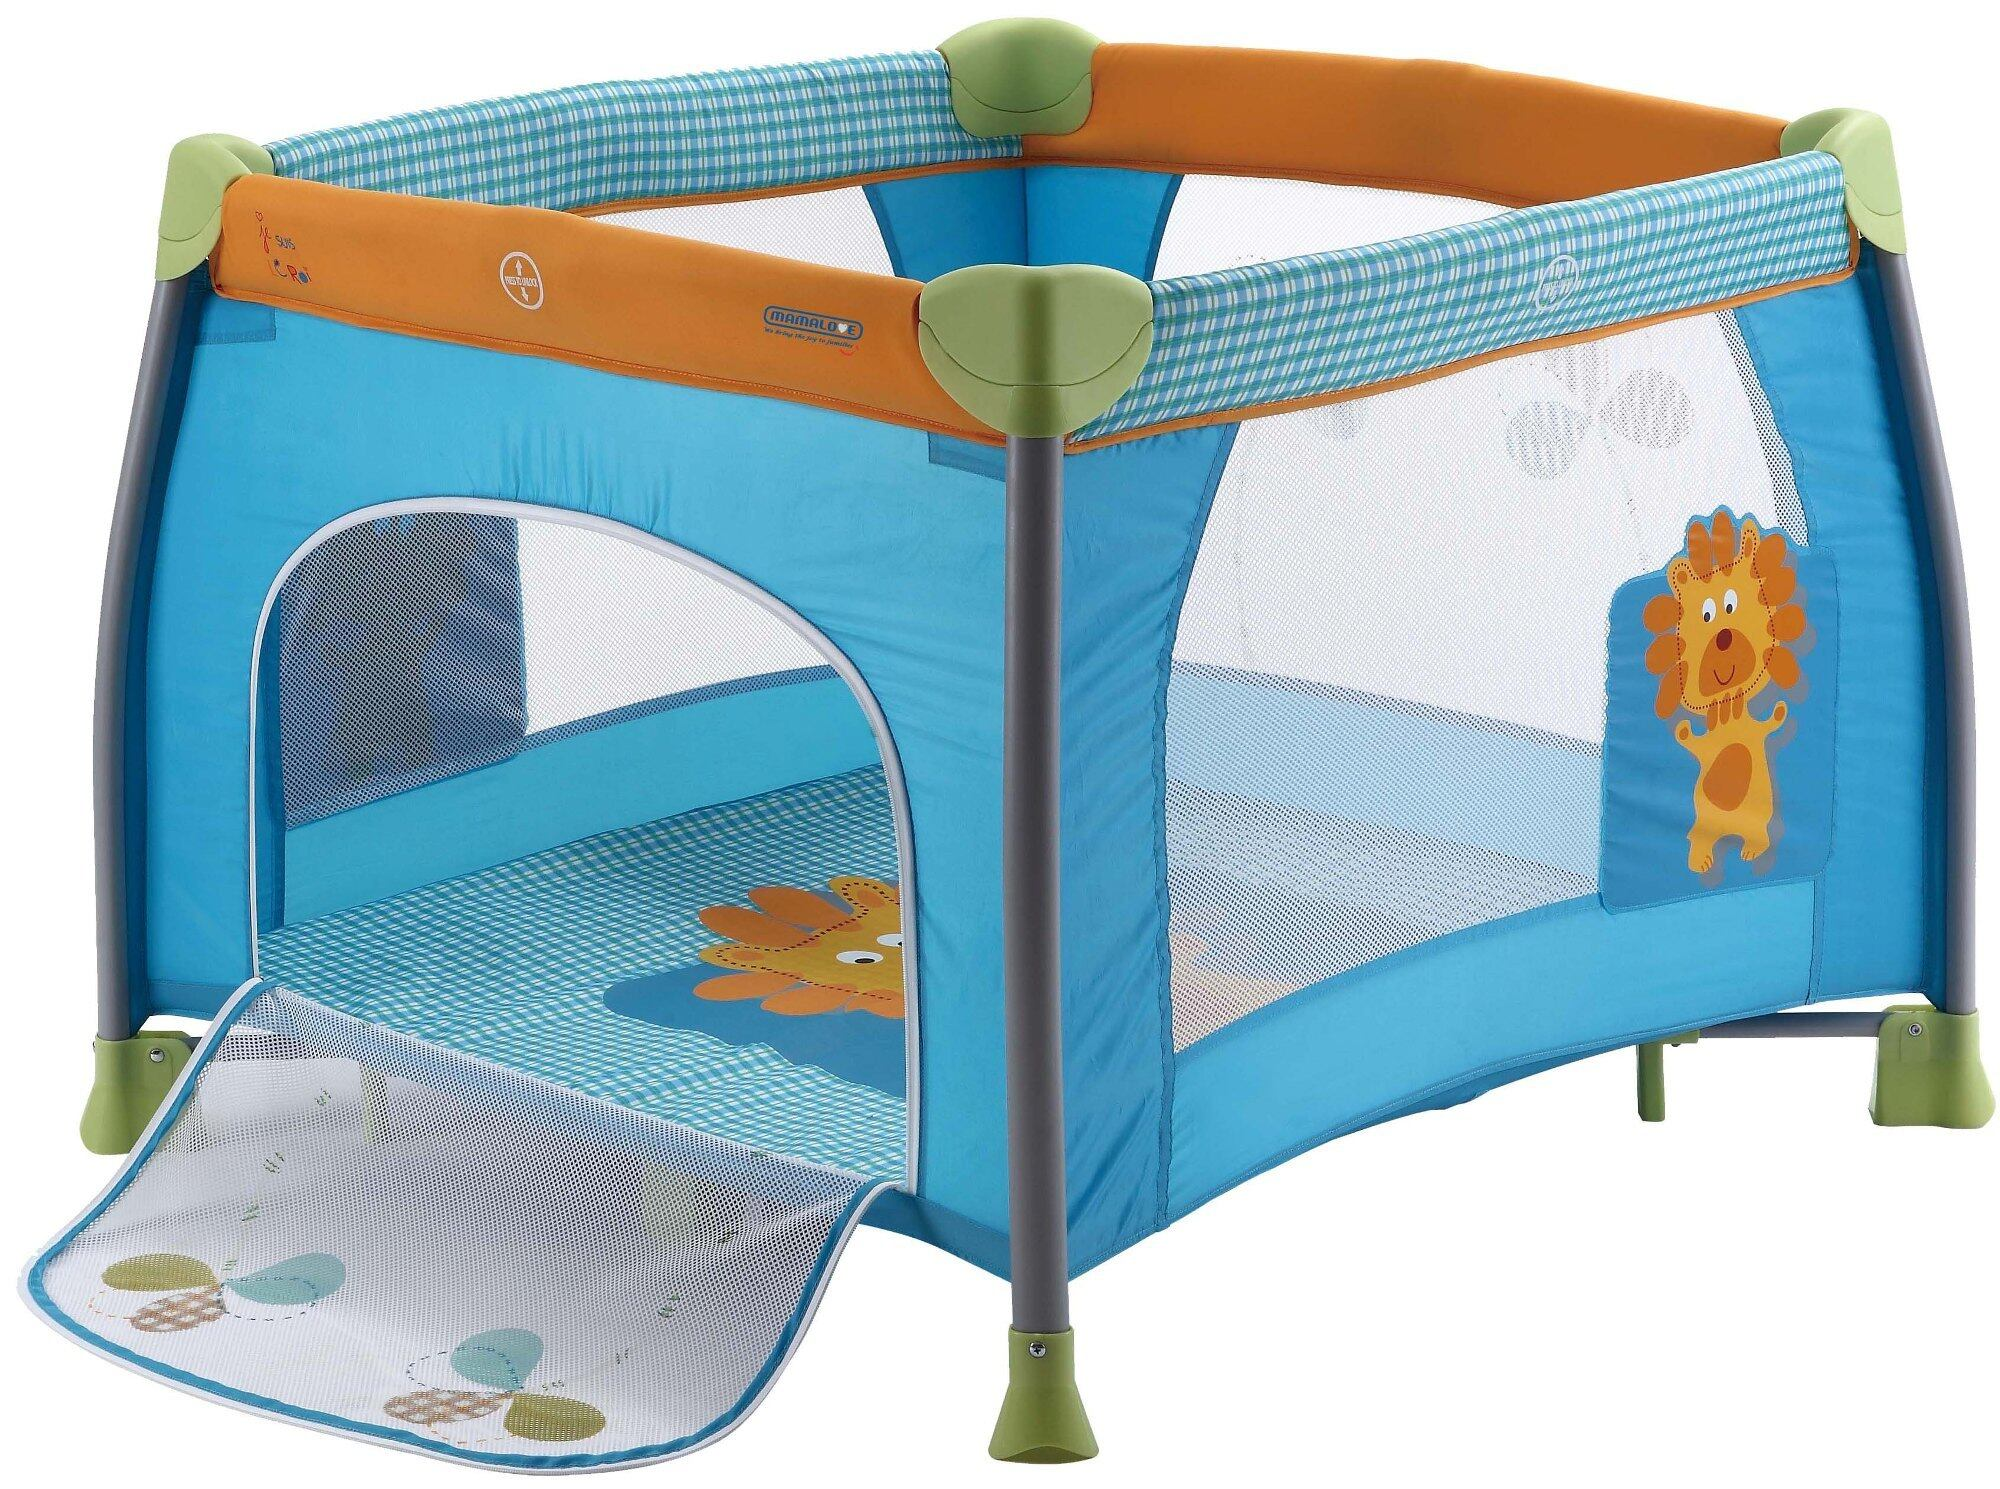 Baby bed online malaysia - Crib Bedding Buy Crib Bedding At Best Price In Malaysia Www Lazada Com My